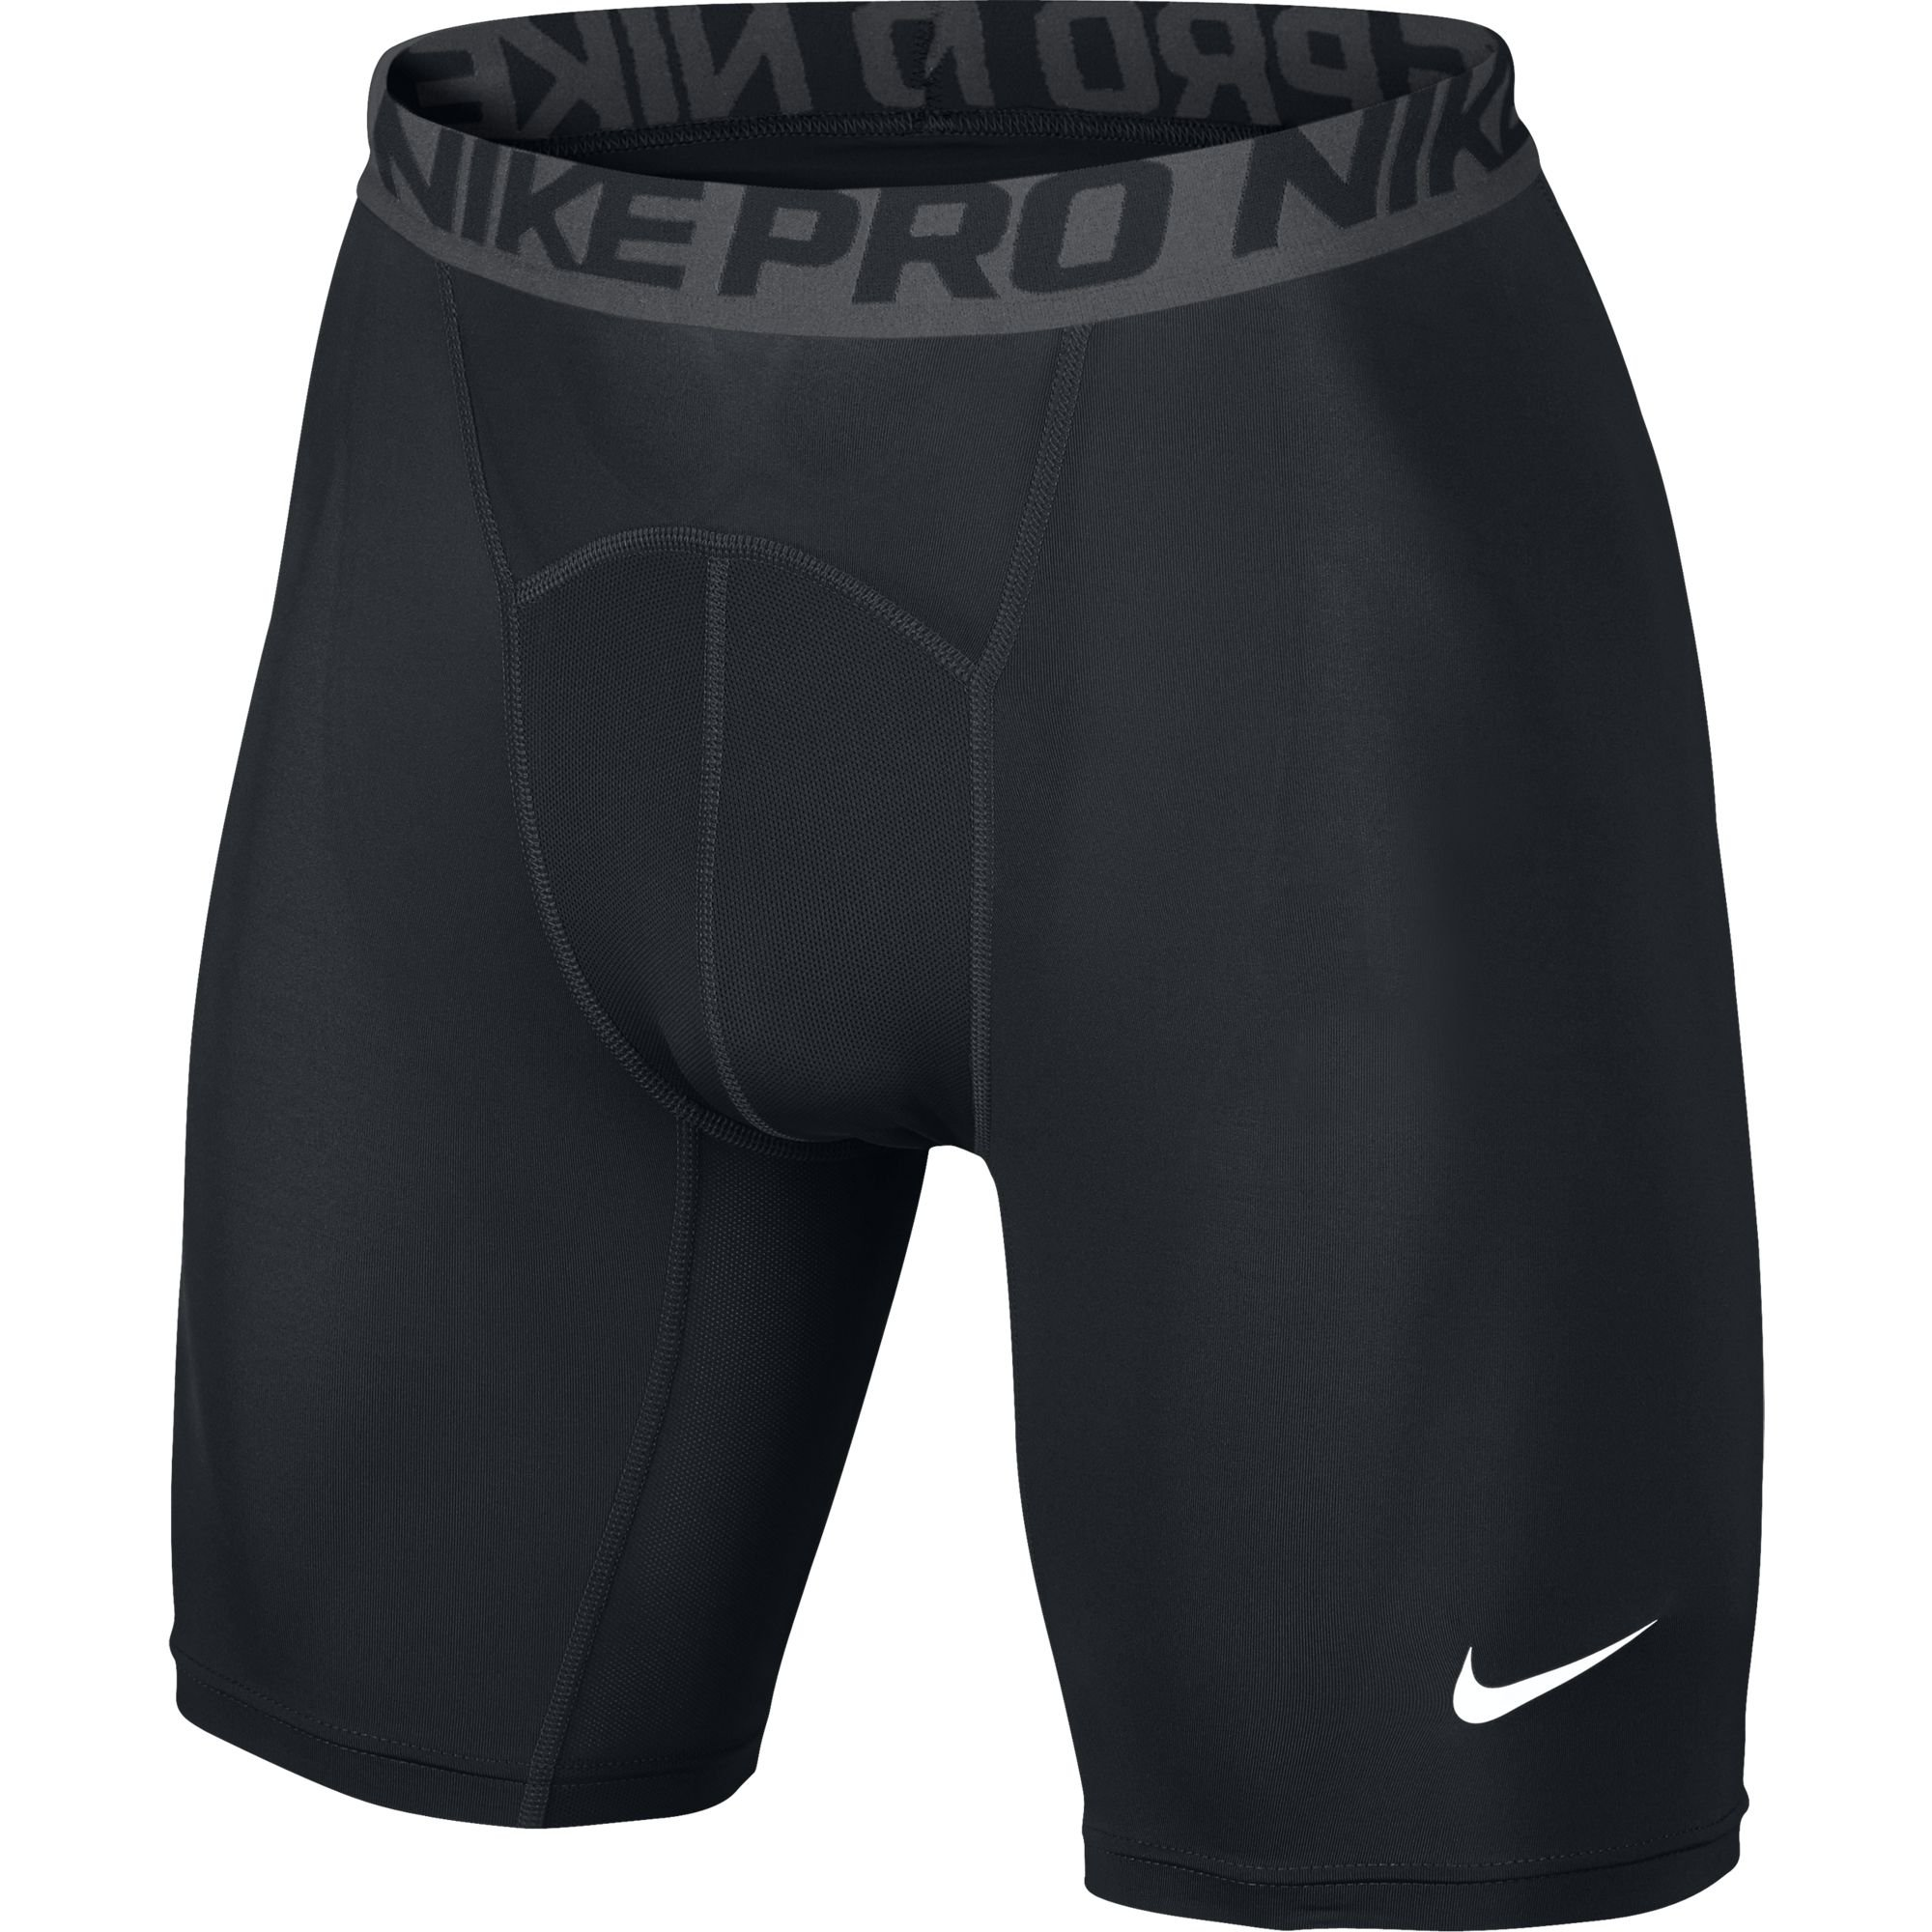 Nike Men's Pro Shorts, Black/Dark Grey/White, Small